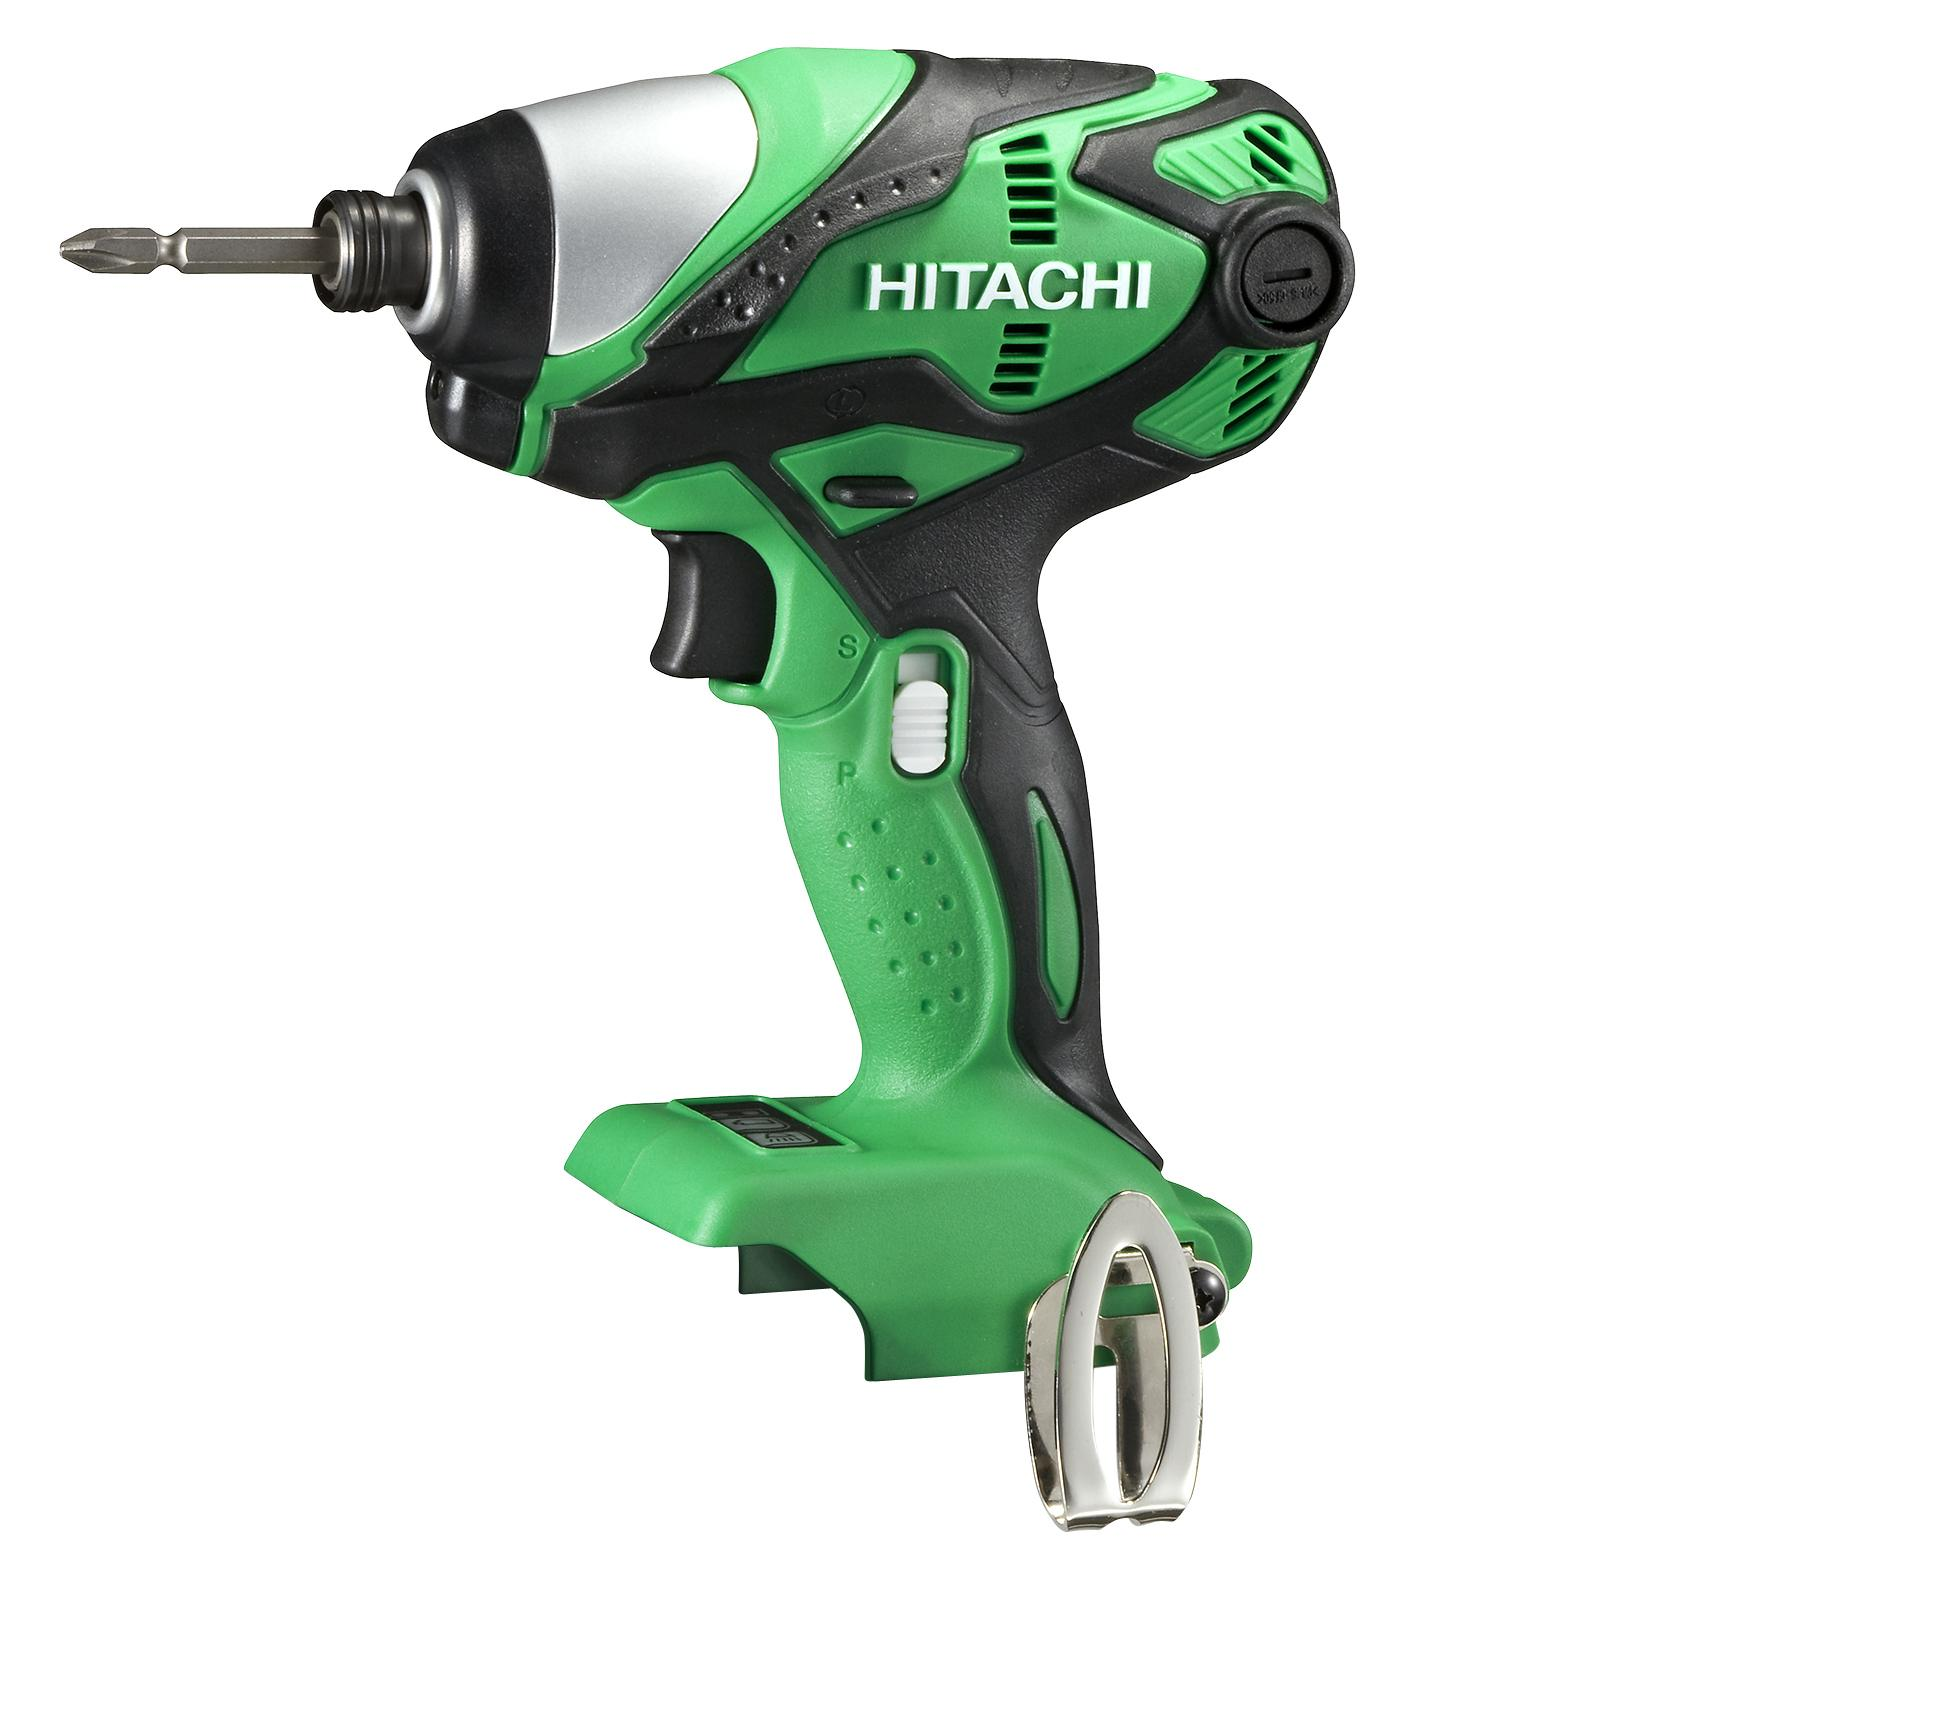 Hitachi Cordless 18V PRO Series Impact Driver - Bare Tool Only